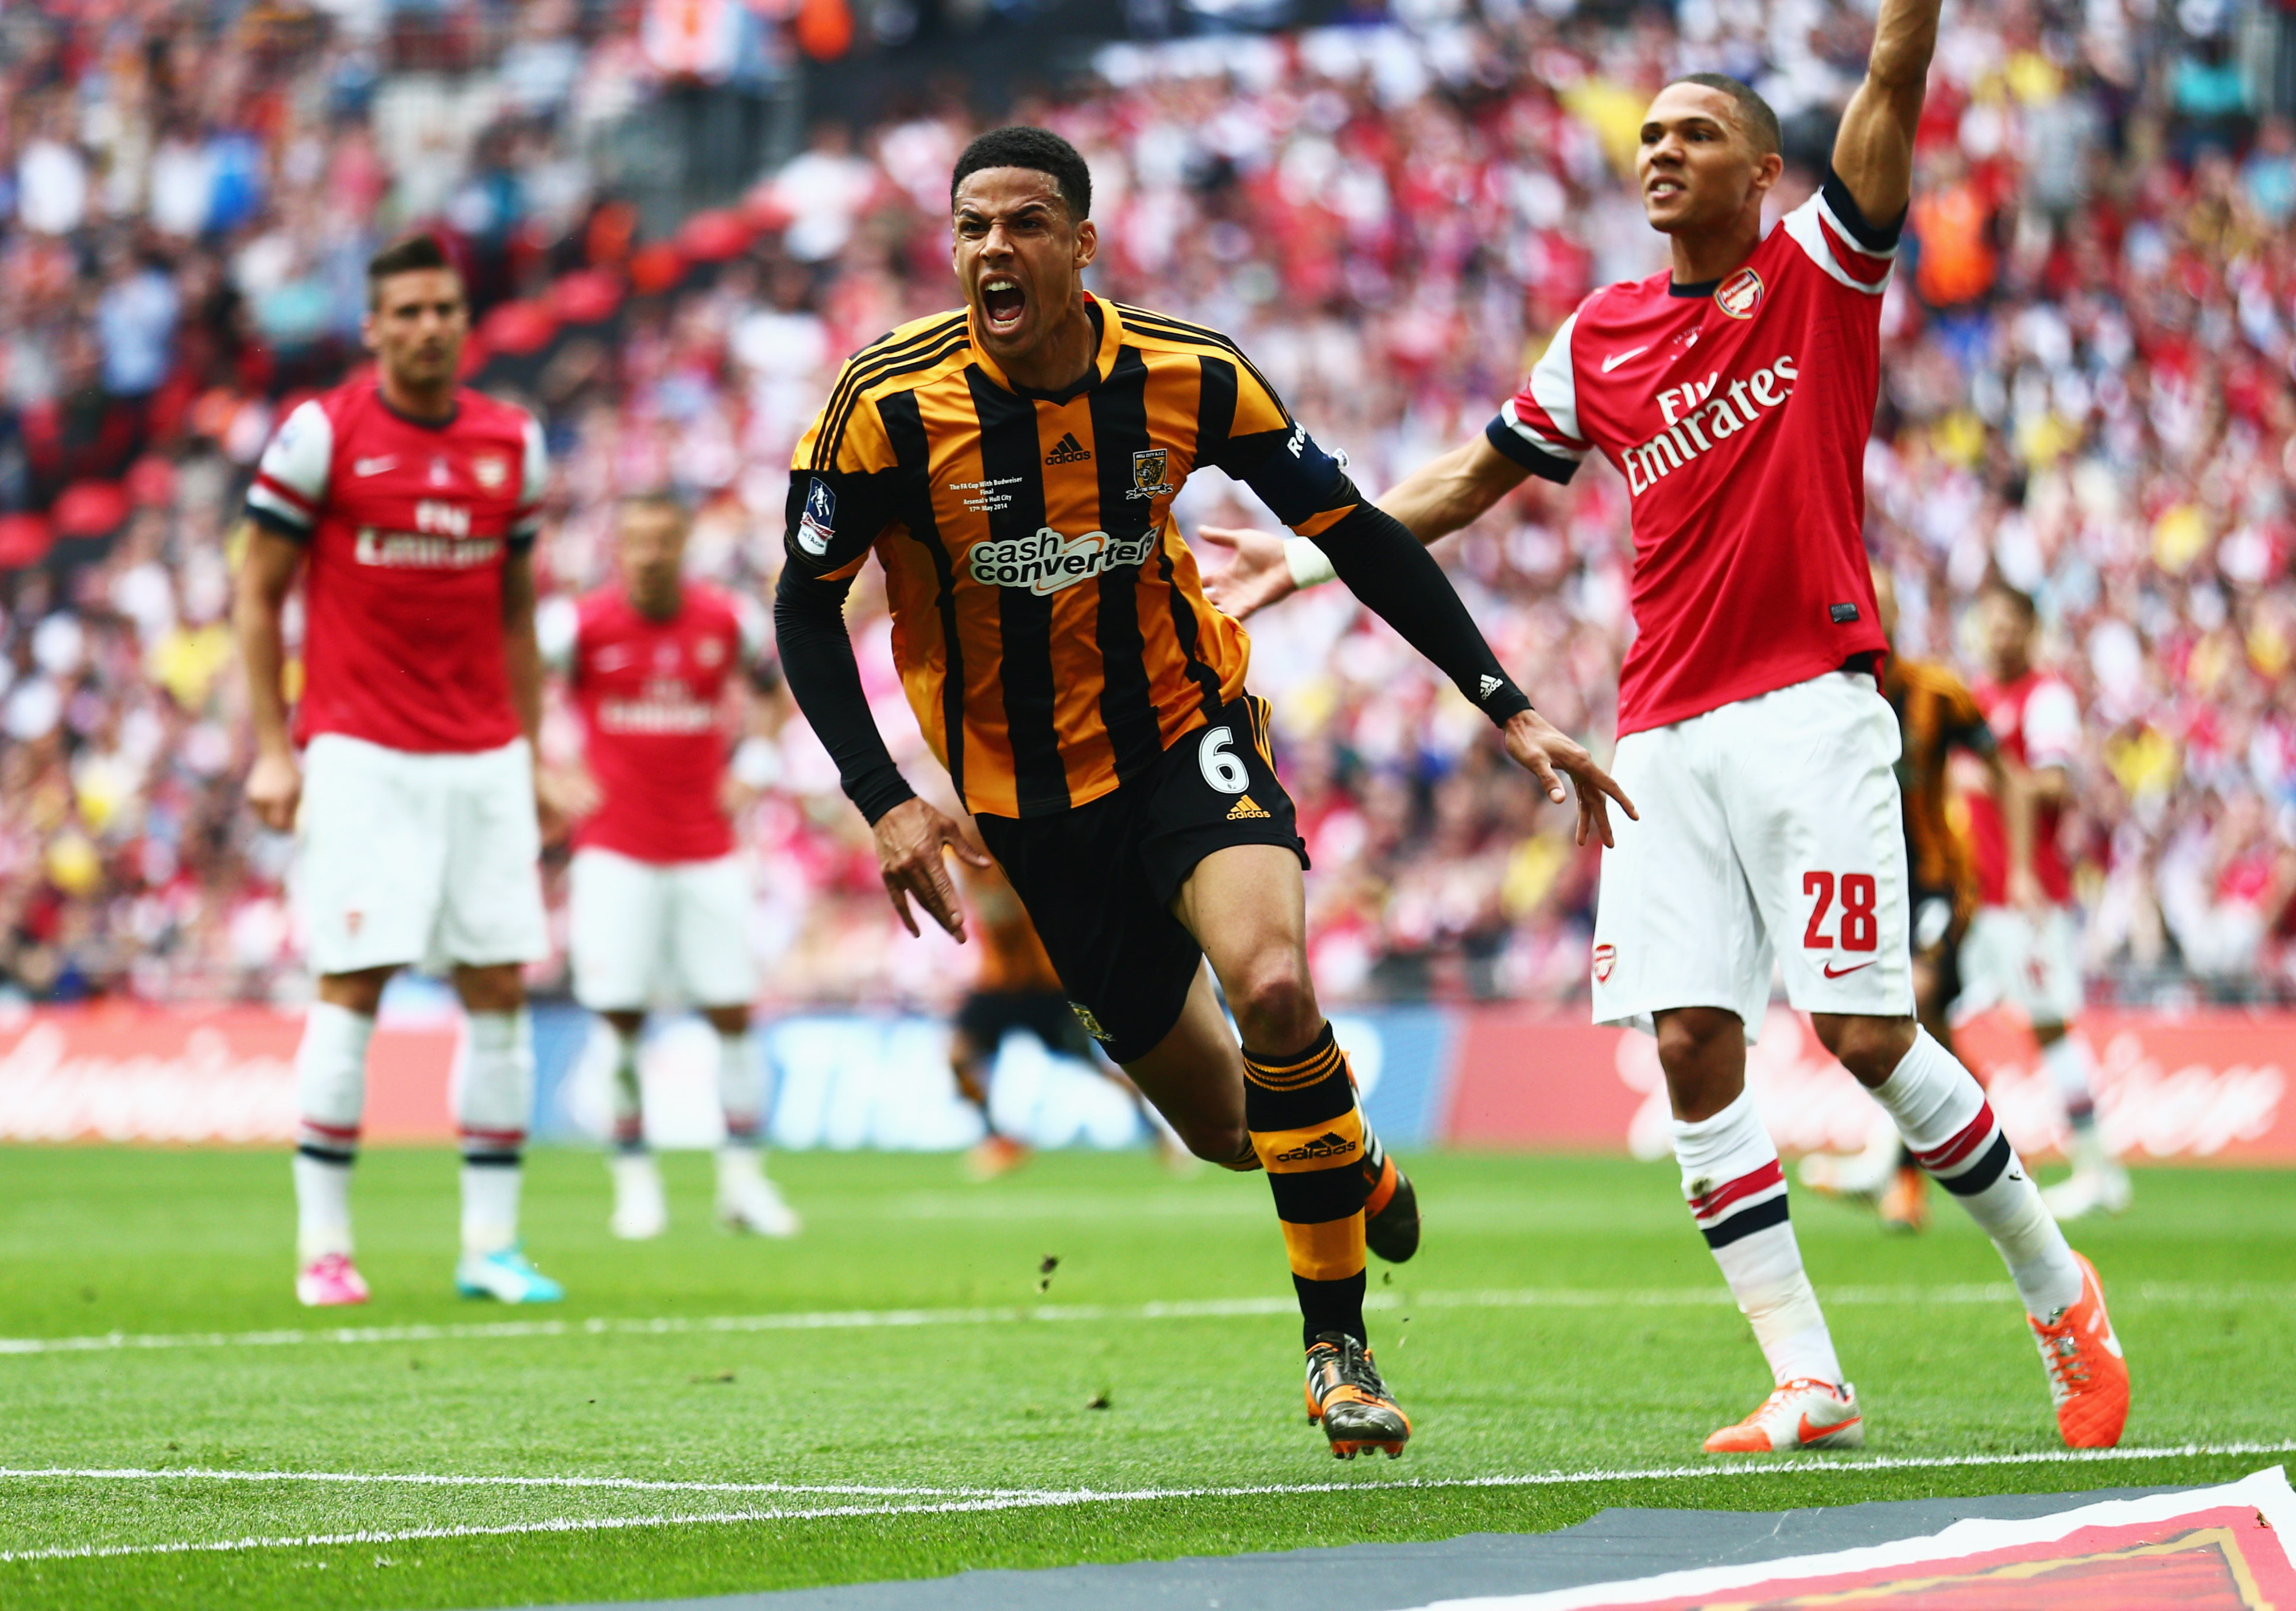 Curtis Davies celebrates his goal in the FA Cup Final